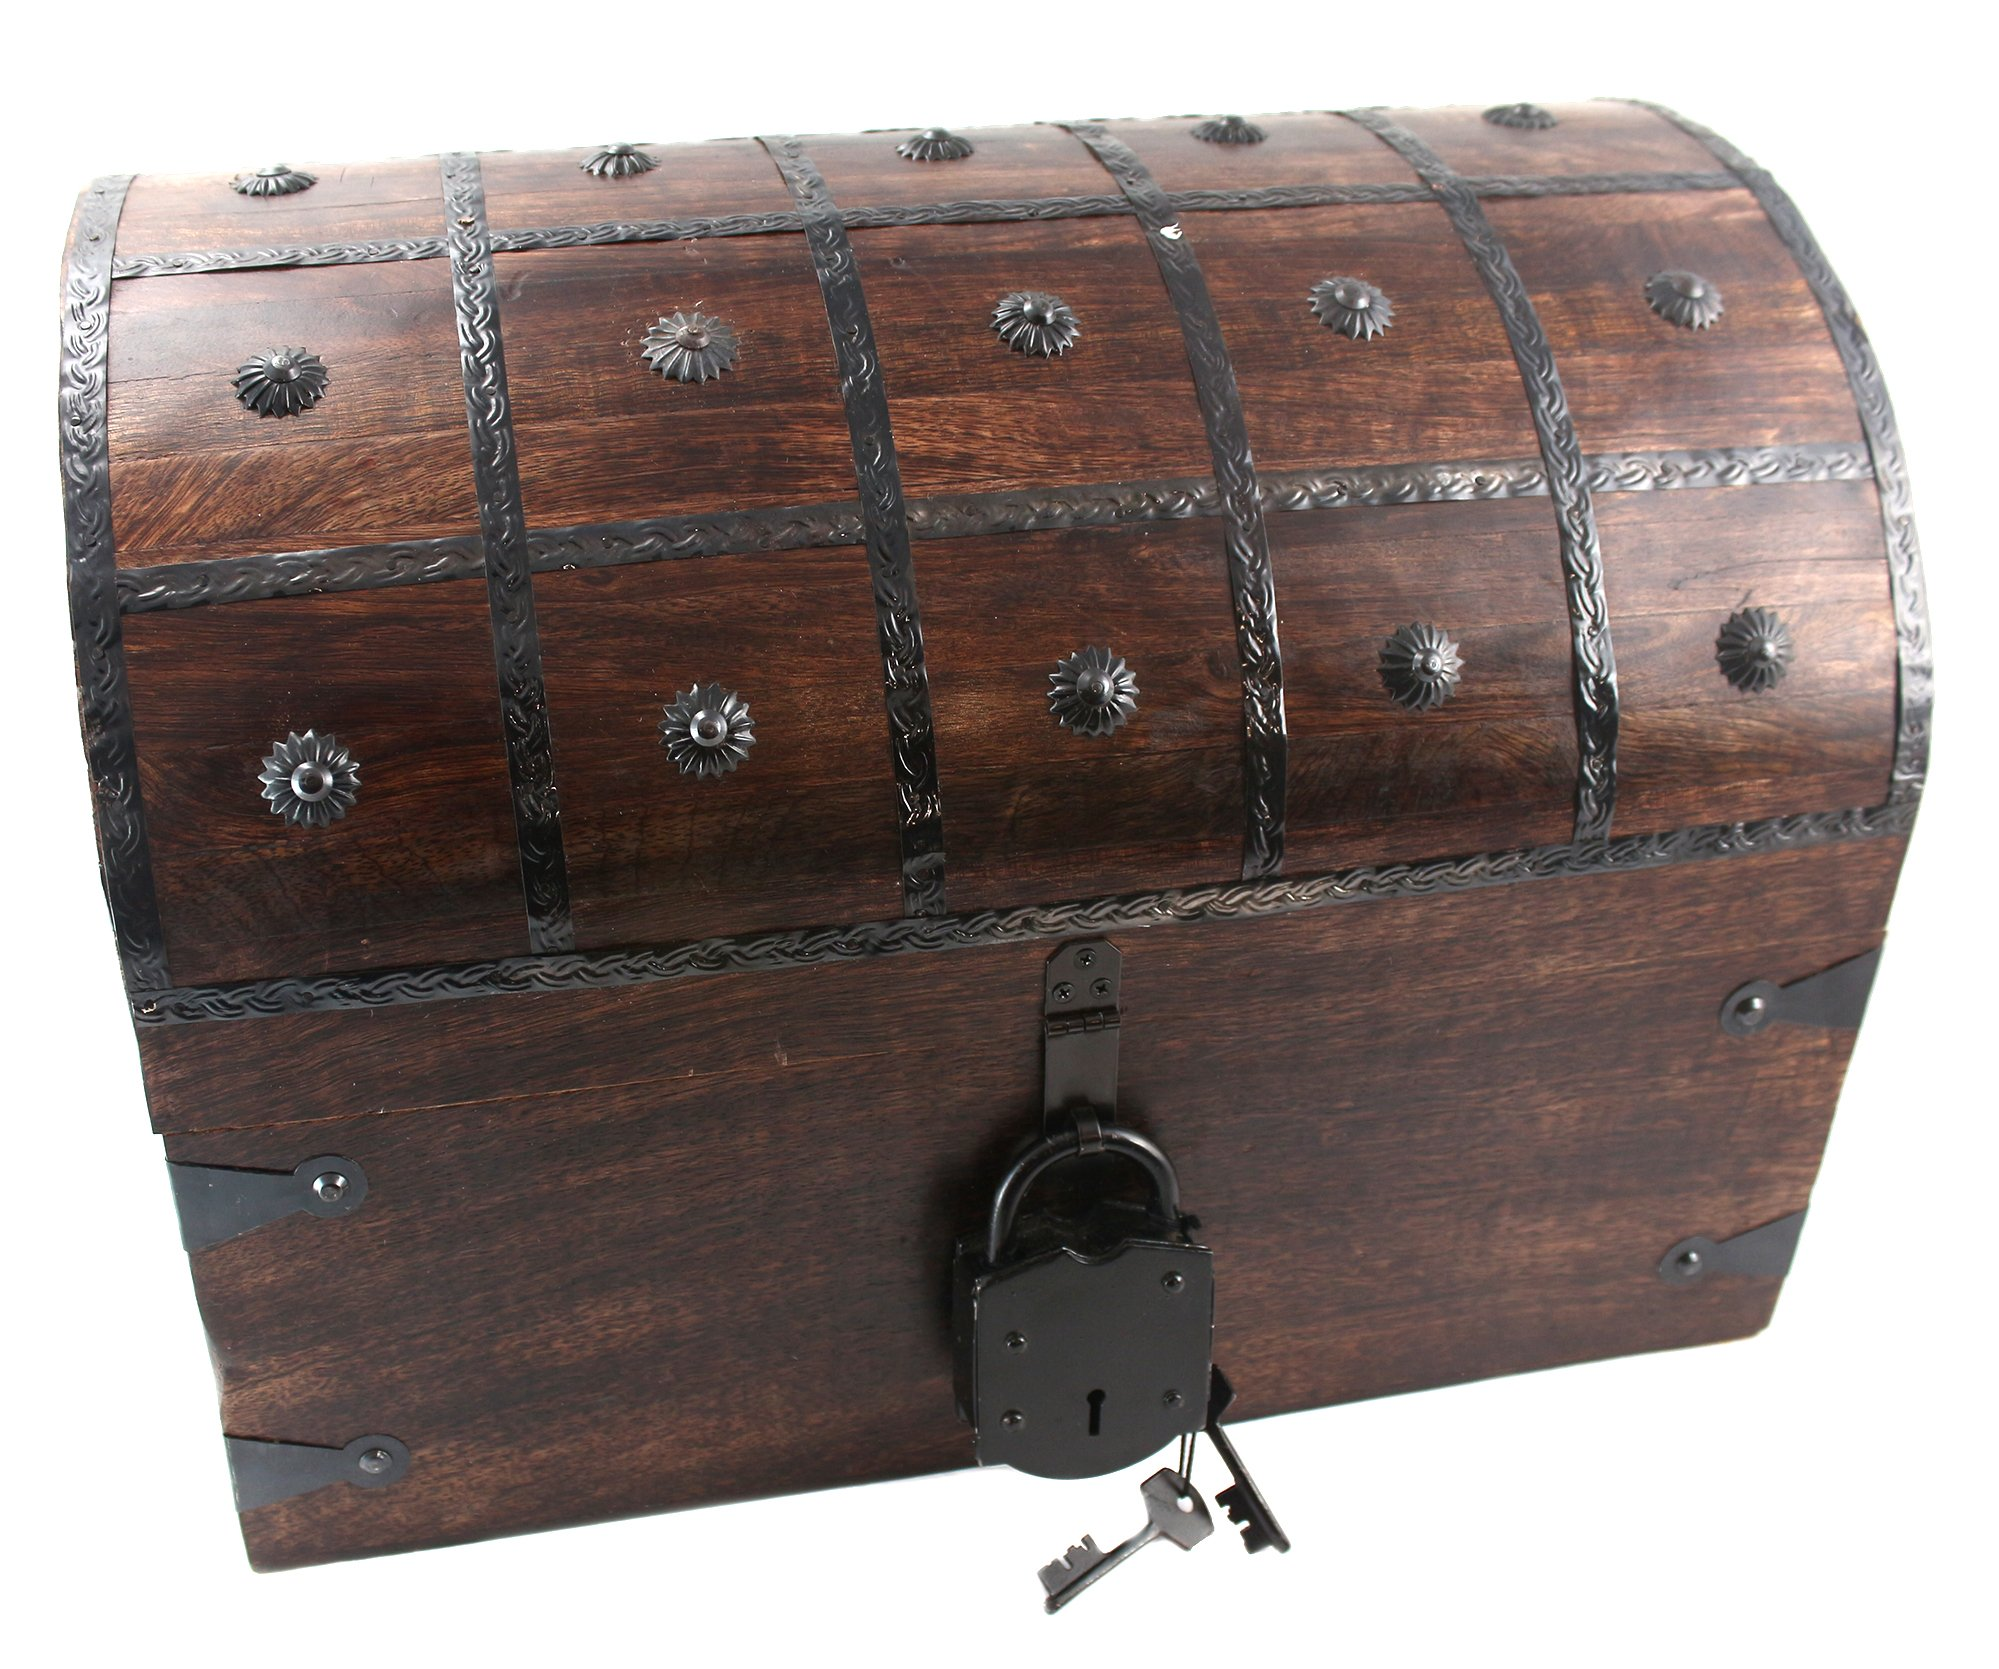 WellPackBox Giant 18''x13''x13'' Wooden Pirate Treasure Chest Box With Antique Style Lock And Skeleton Key (Giant)